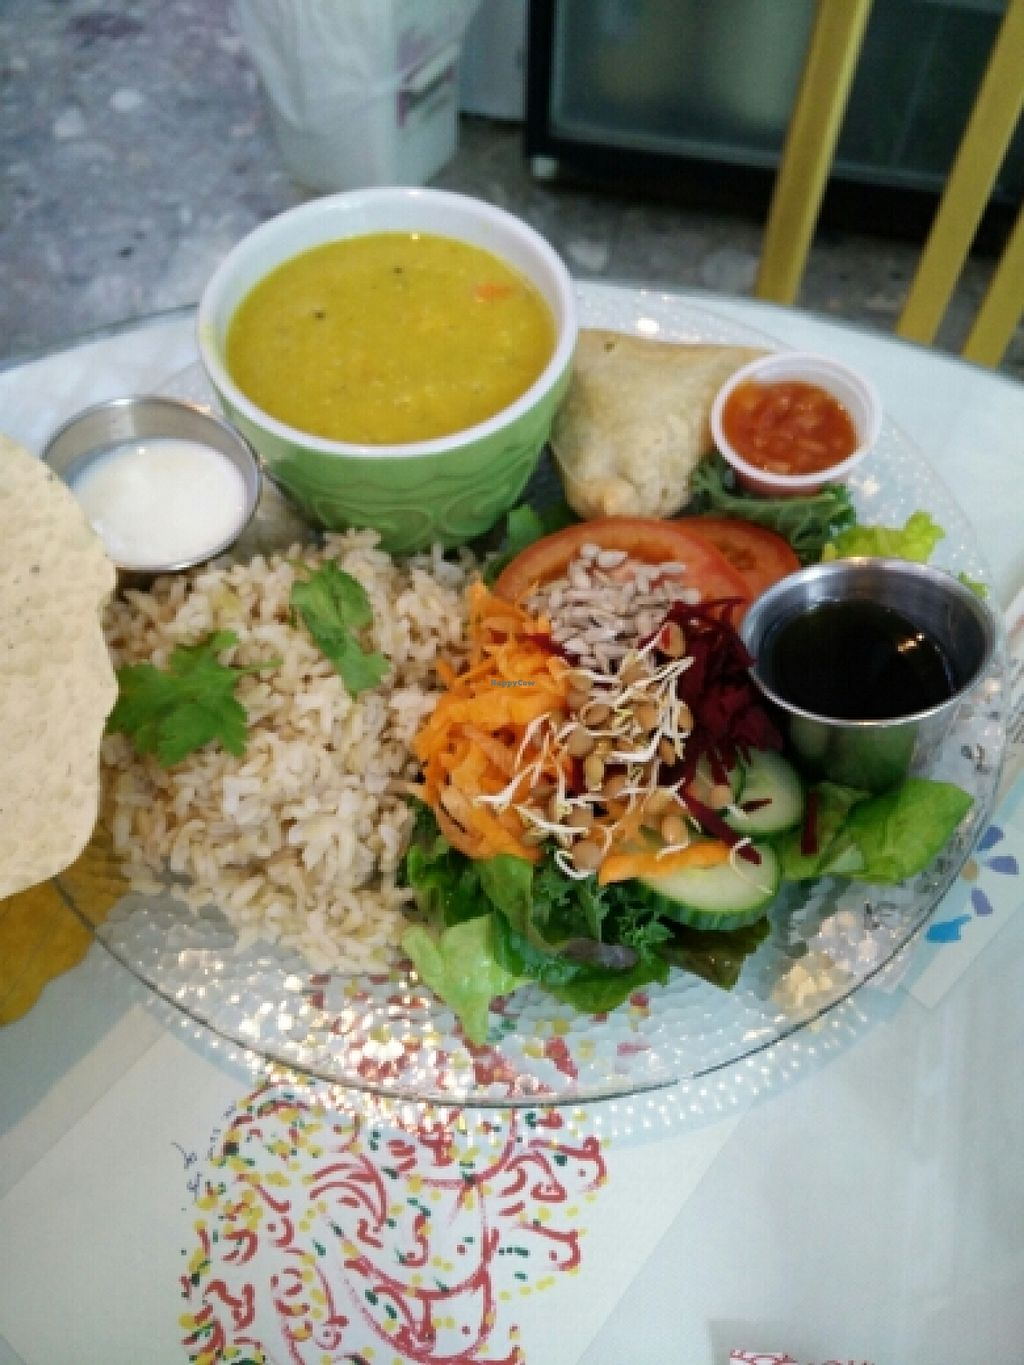 """Photo of Peace-Garden  by <a href=""""/members/profile/GrilledEverything"""">GrilledEverything</a> <br/>Dal with samosa, salad, rice <br/> March 12, 2016  - <a href='/contact/abuse/image/1329/139708'>Report</a>"""